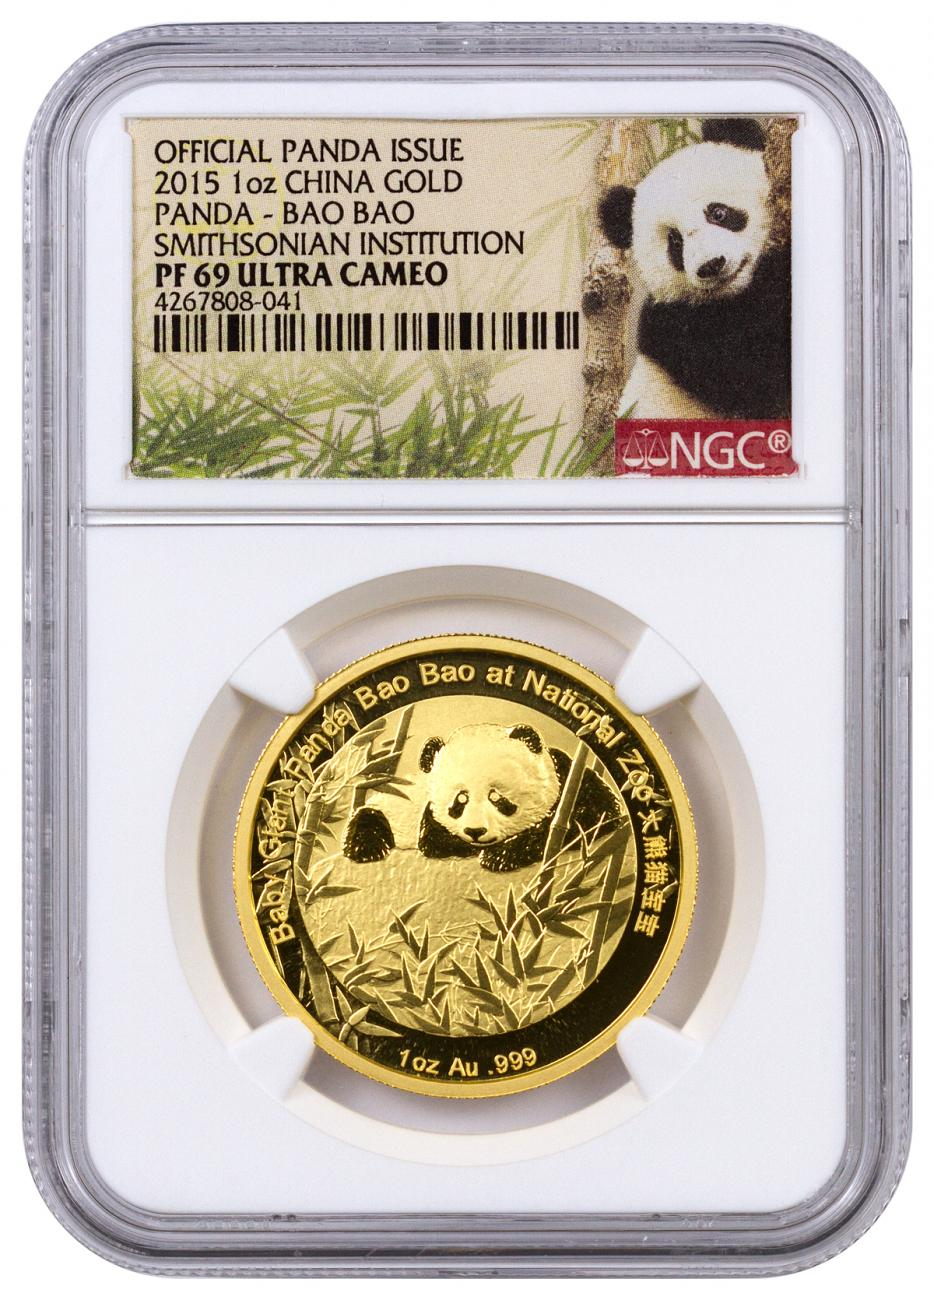 2015 China 1 oz. Proof Gold Panda Smithsonian Institution Official Commemorative - Bao Bao - NGC PF69 UC (Panda Label)